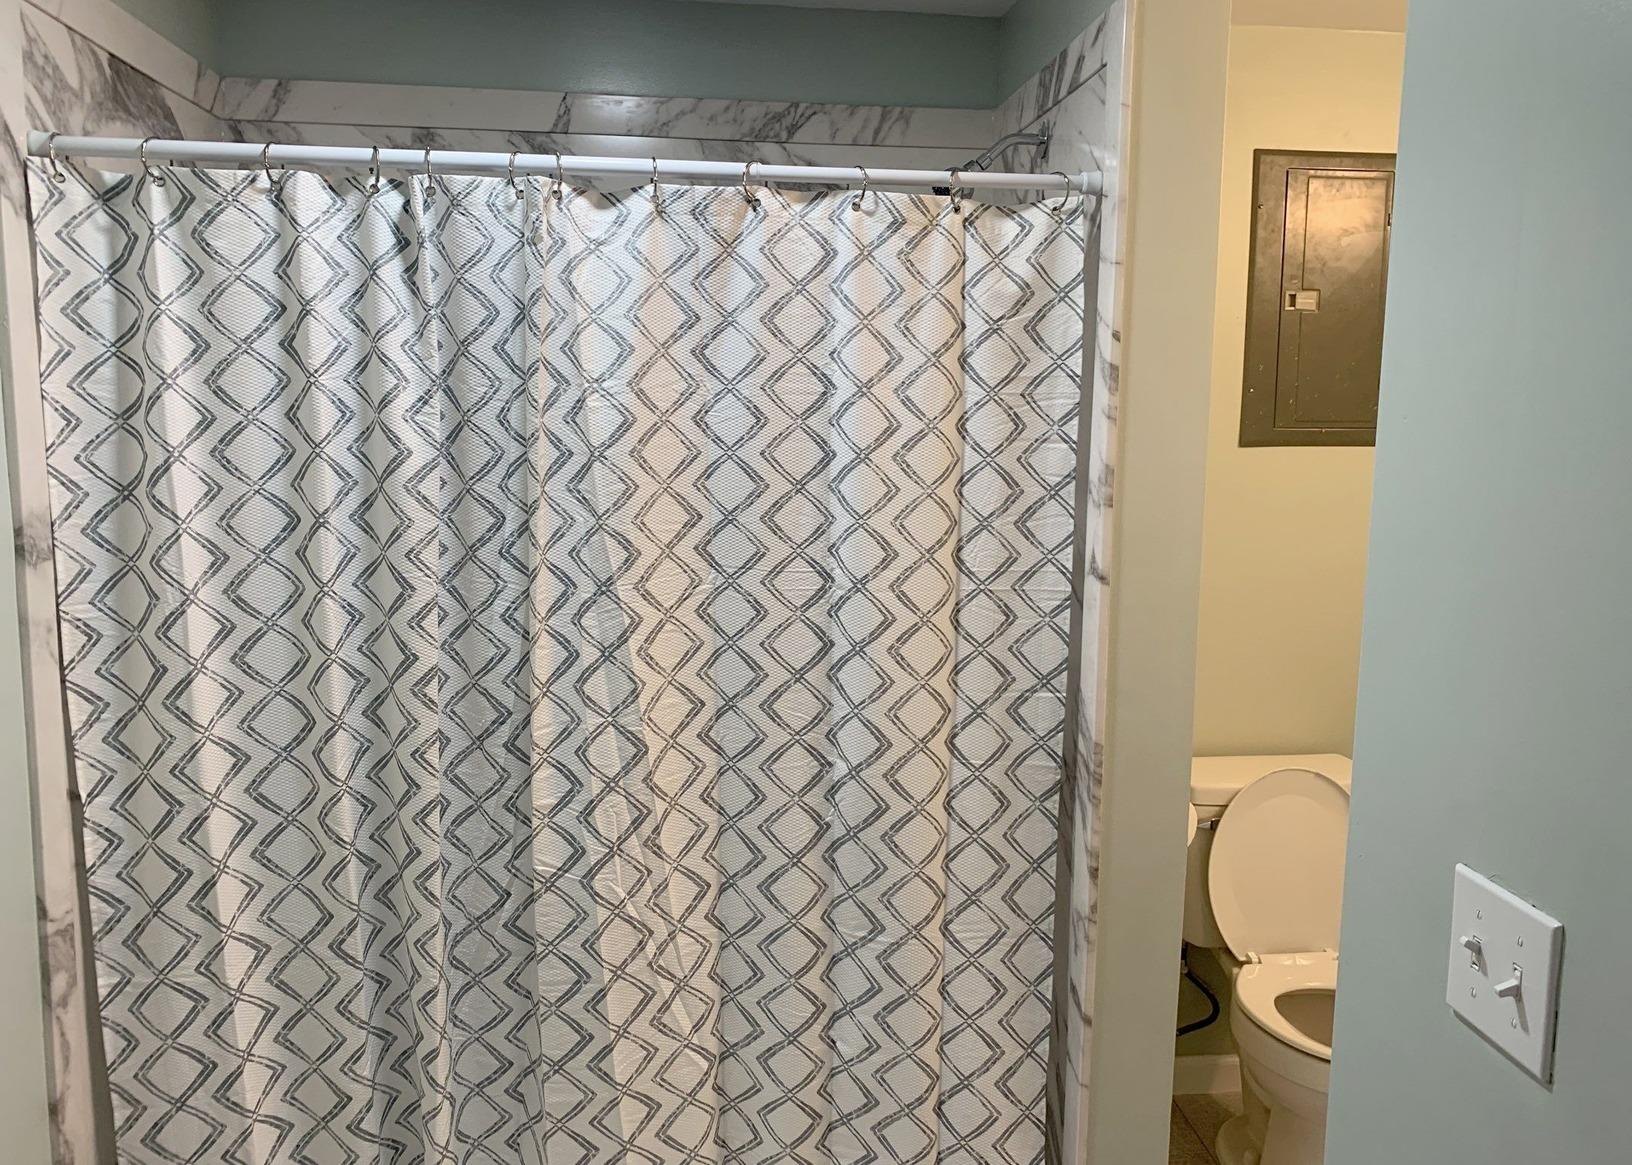 Utility area Converted to a Bathroom at a Home in Grandview, MO - After Photo